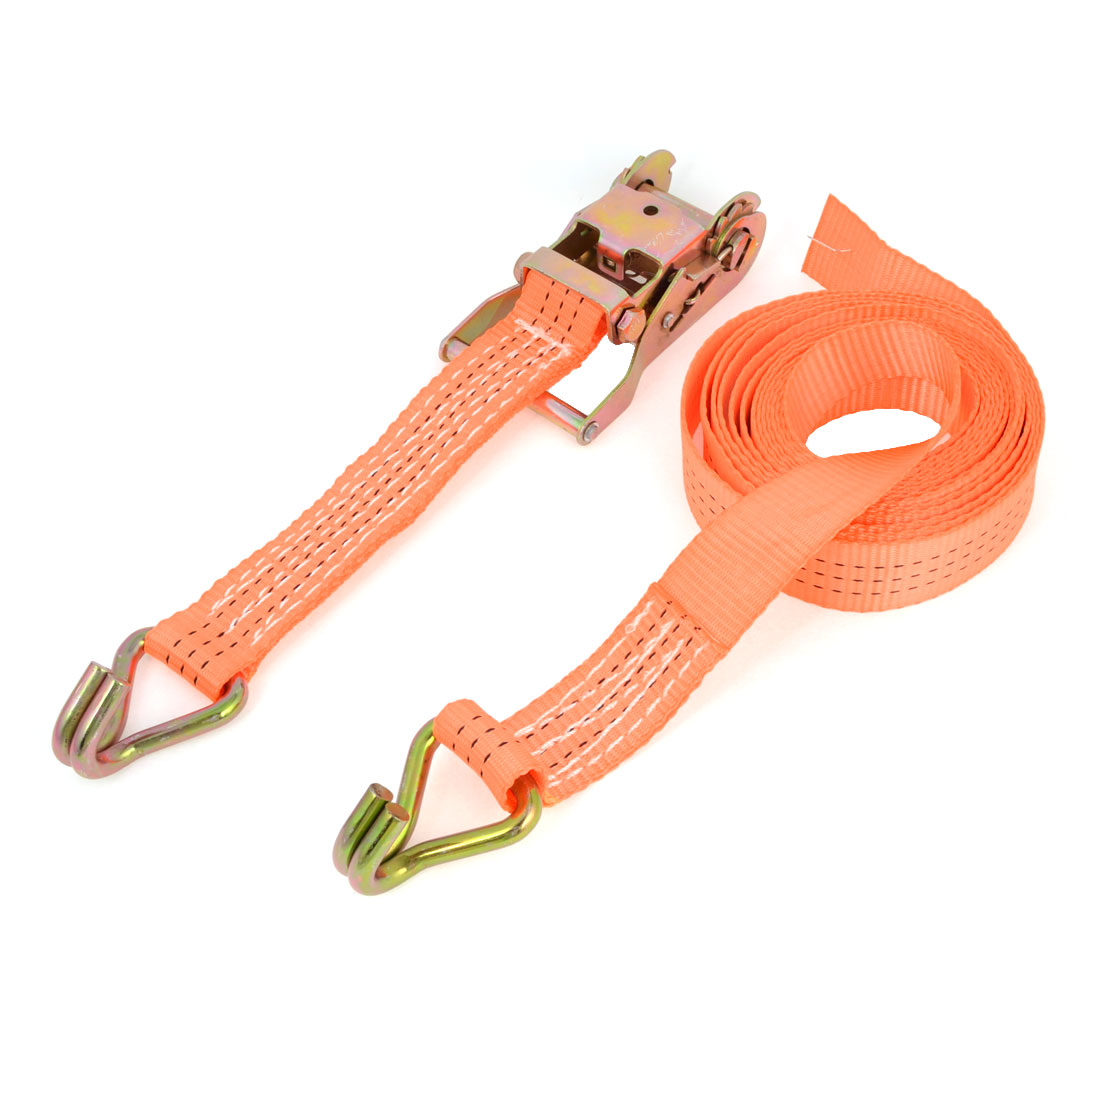 Unique Bargains Lorry Truck Container Goods Binding Luggage Bundle Rope 5M Long Orange